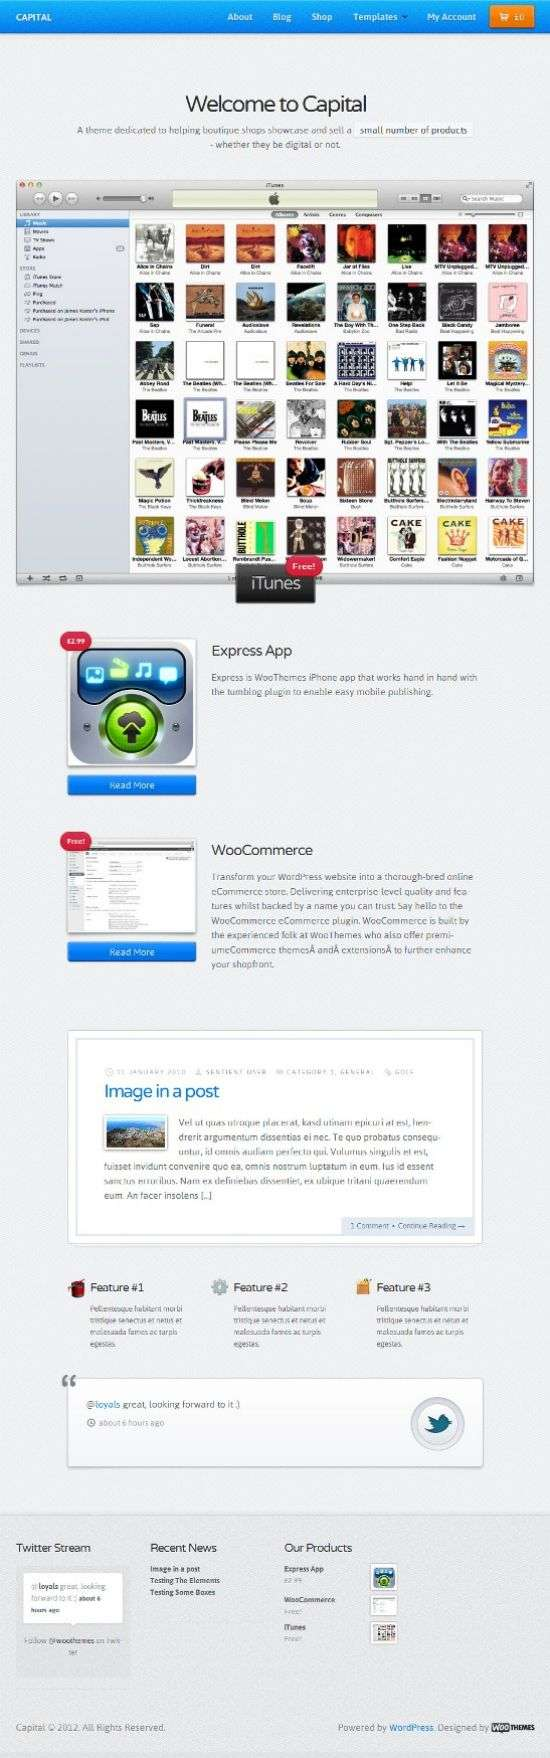 woothemes capital avjthemescom 01 - Capital WordPress Theme